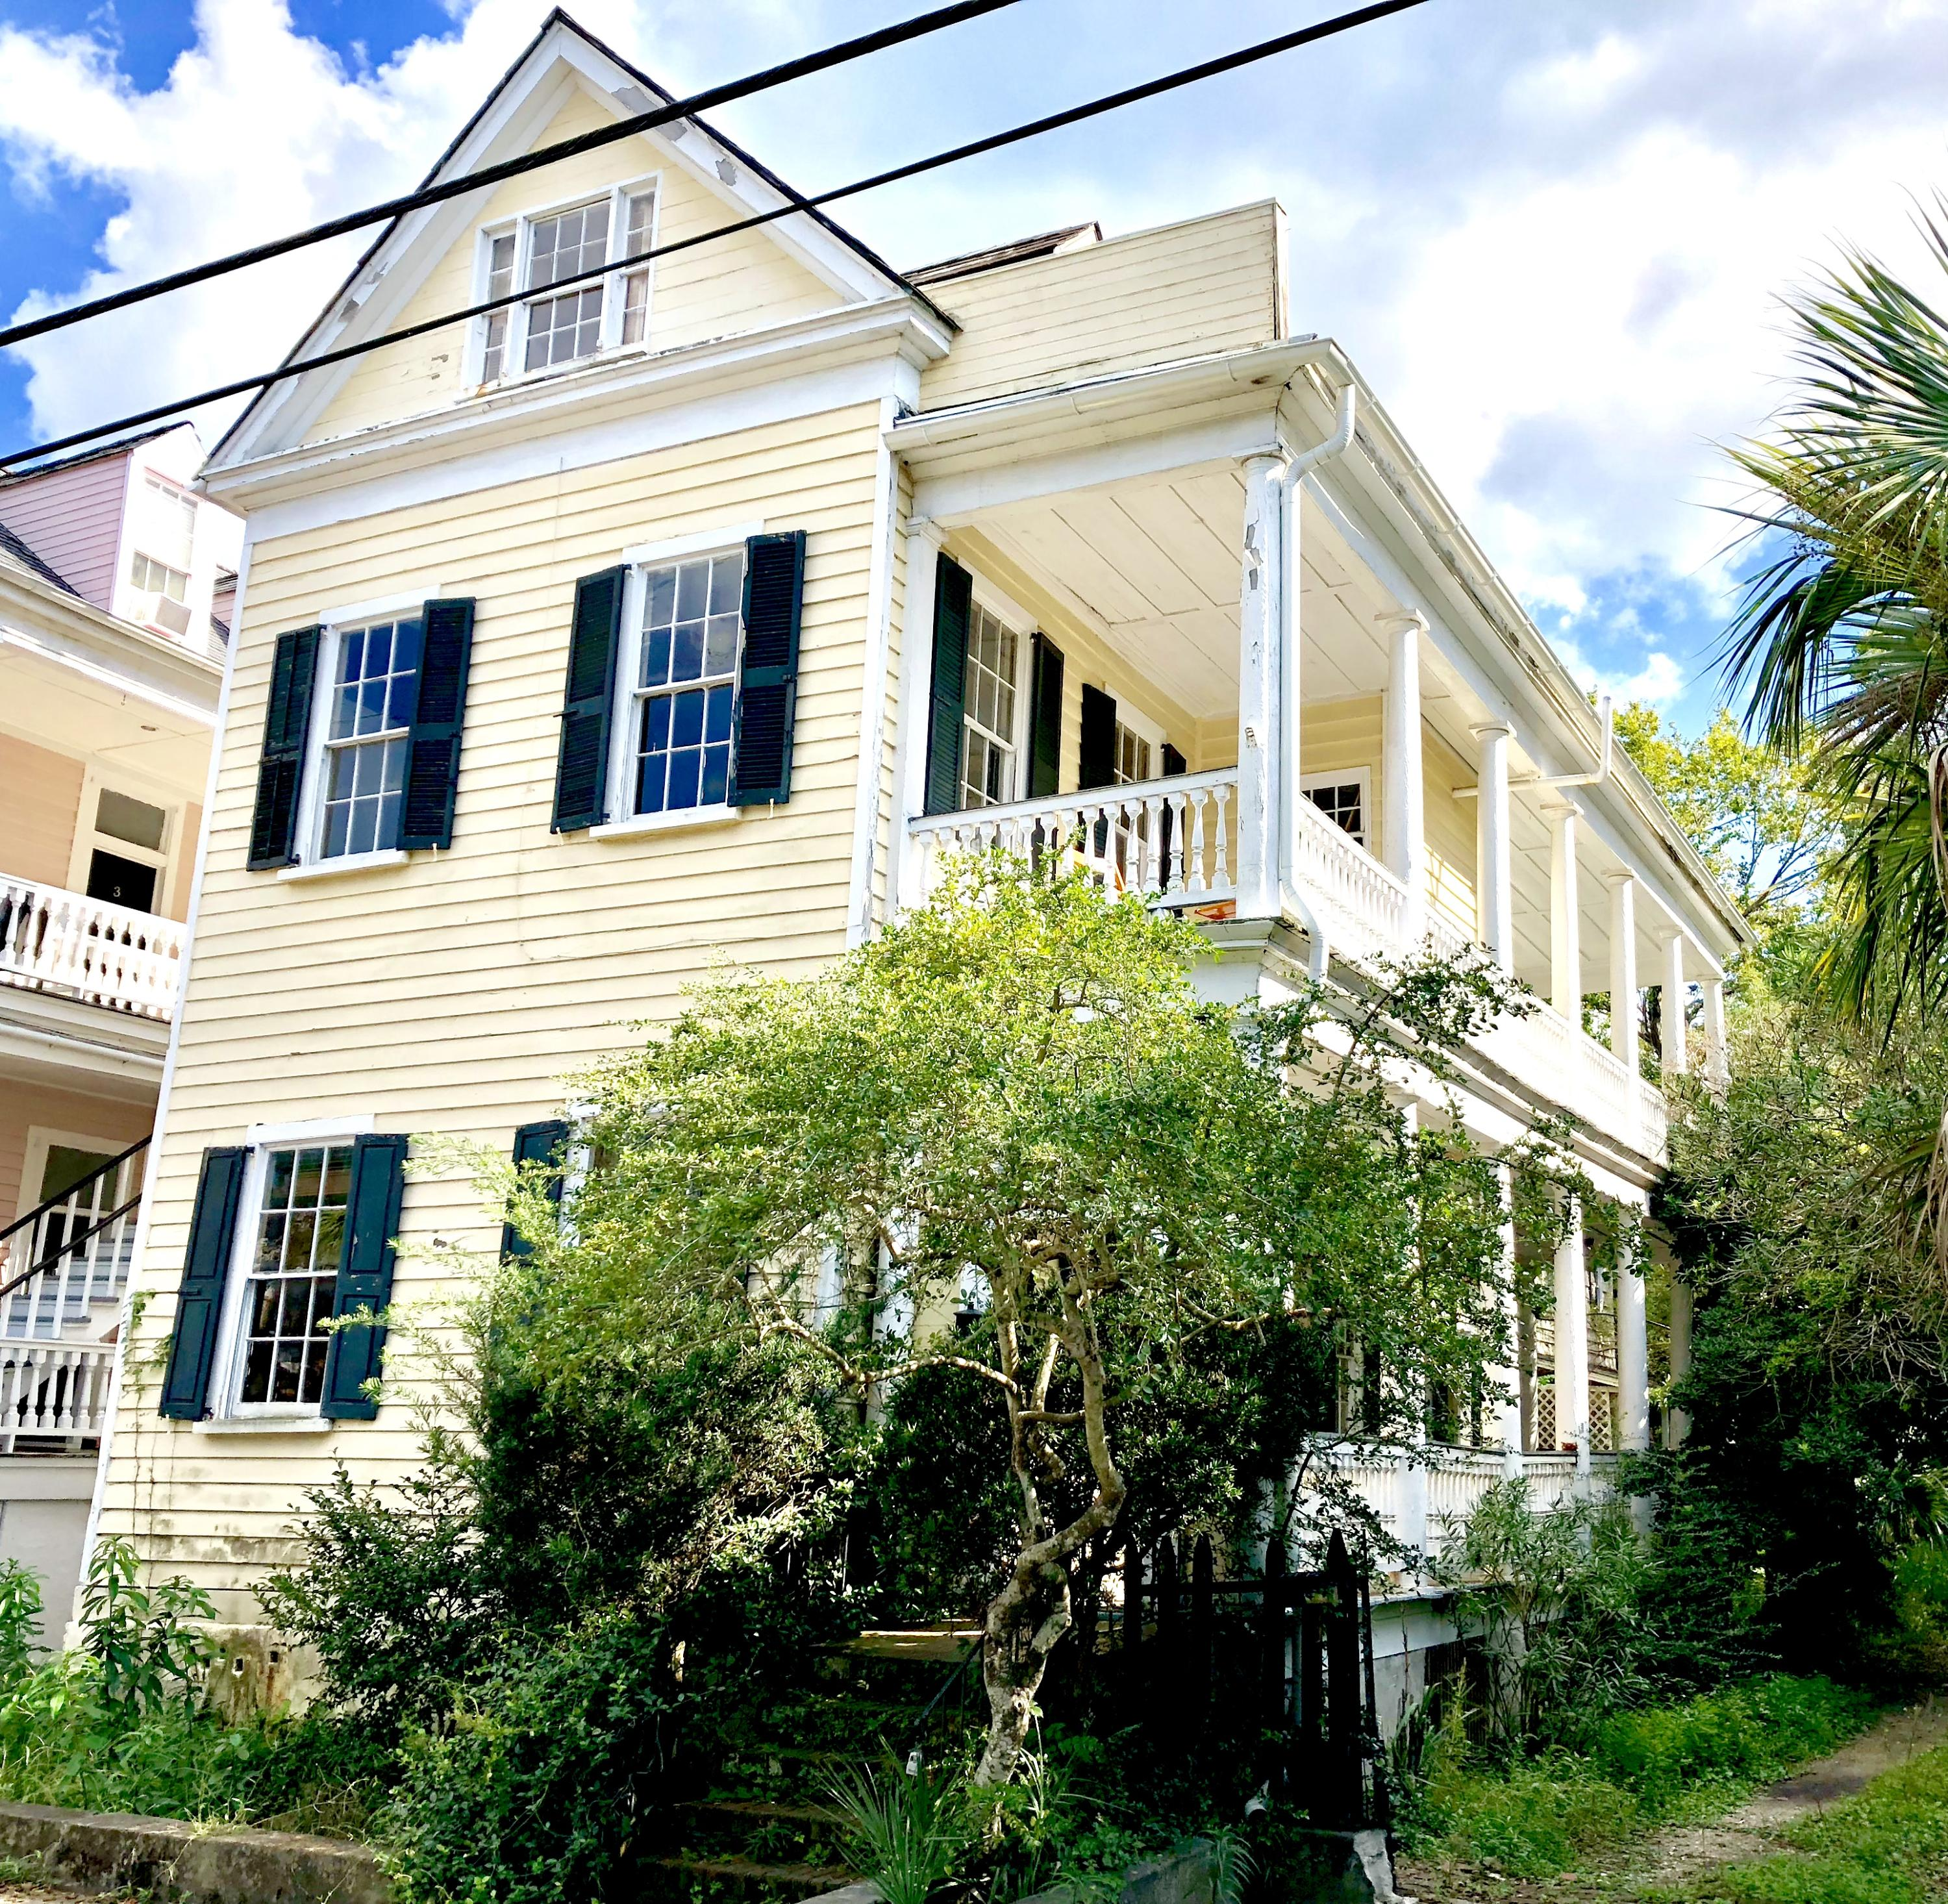 Locountry.com - MLS Number: 18025892